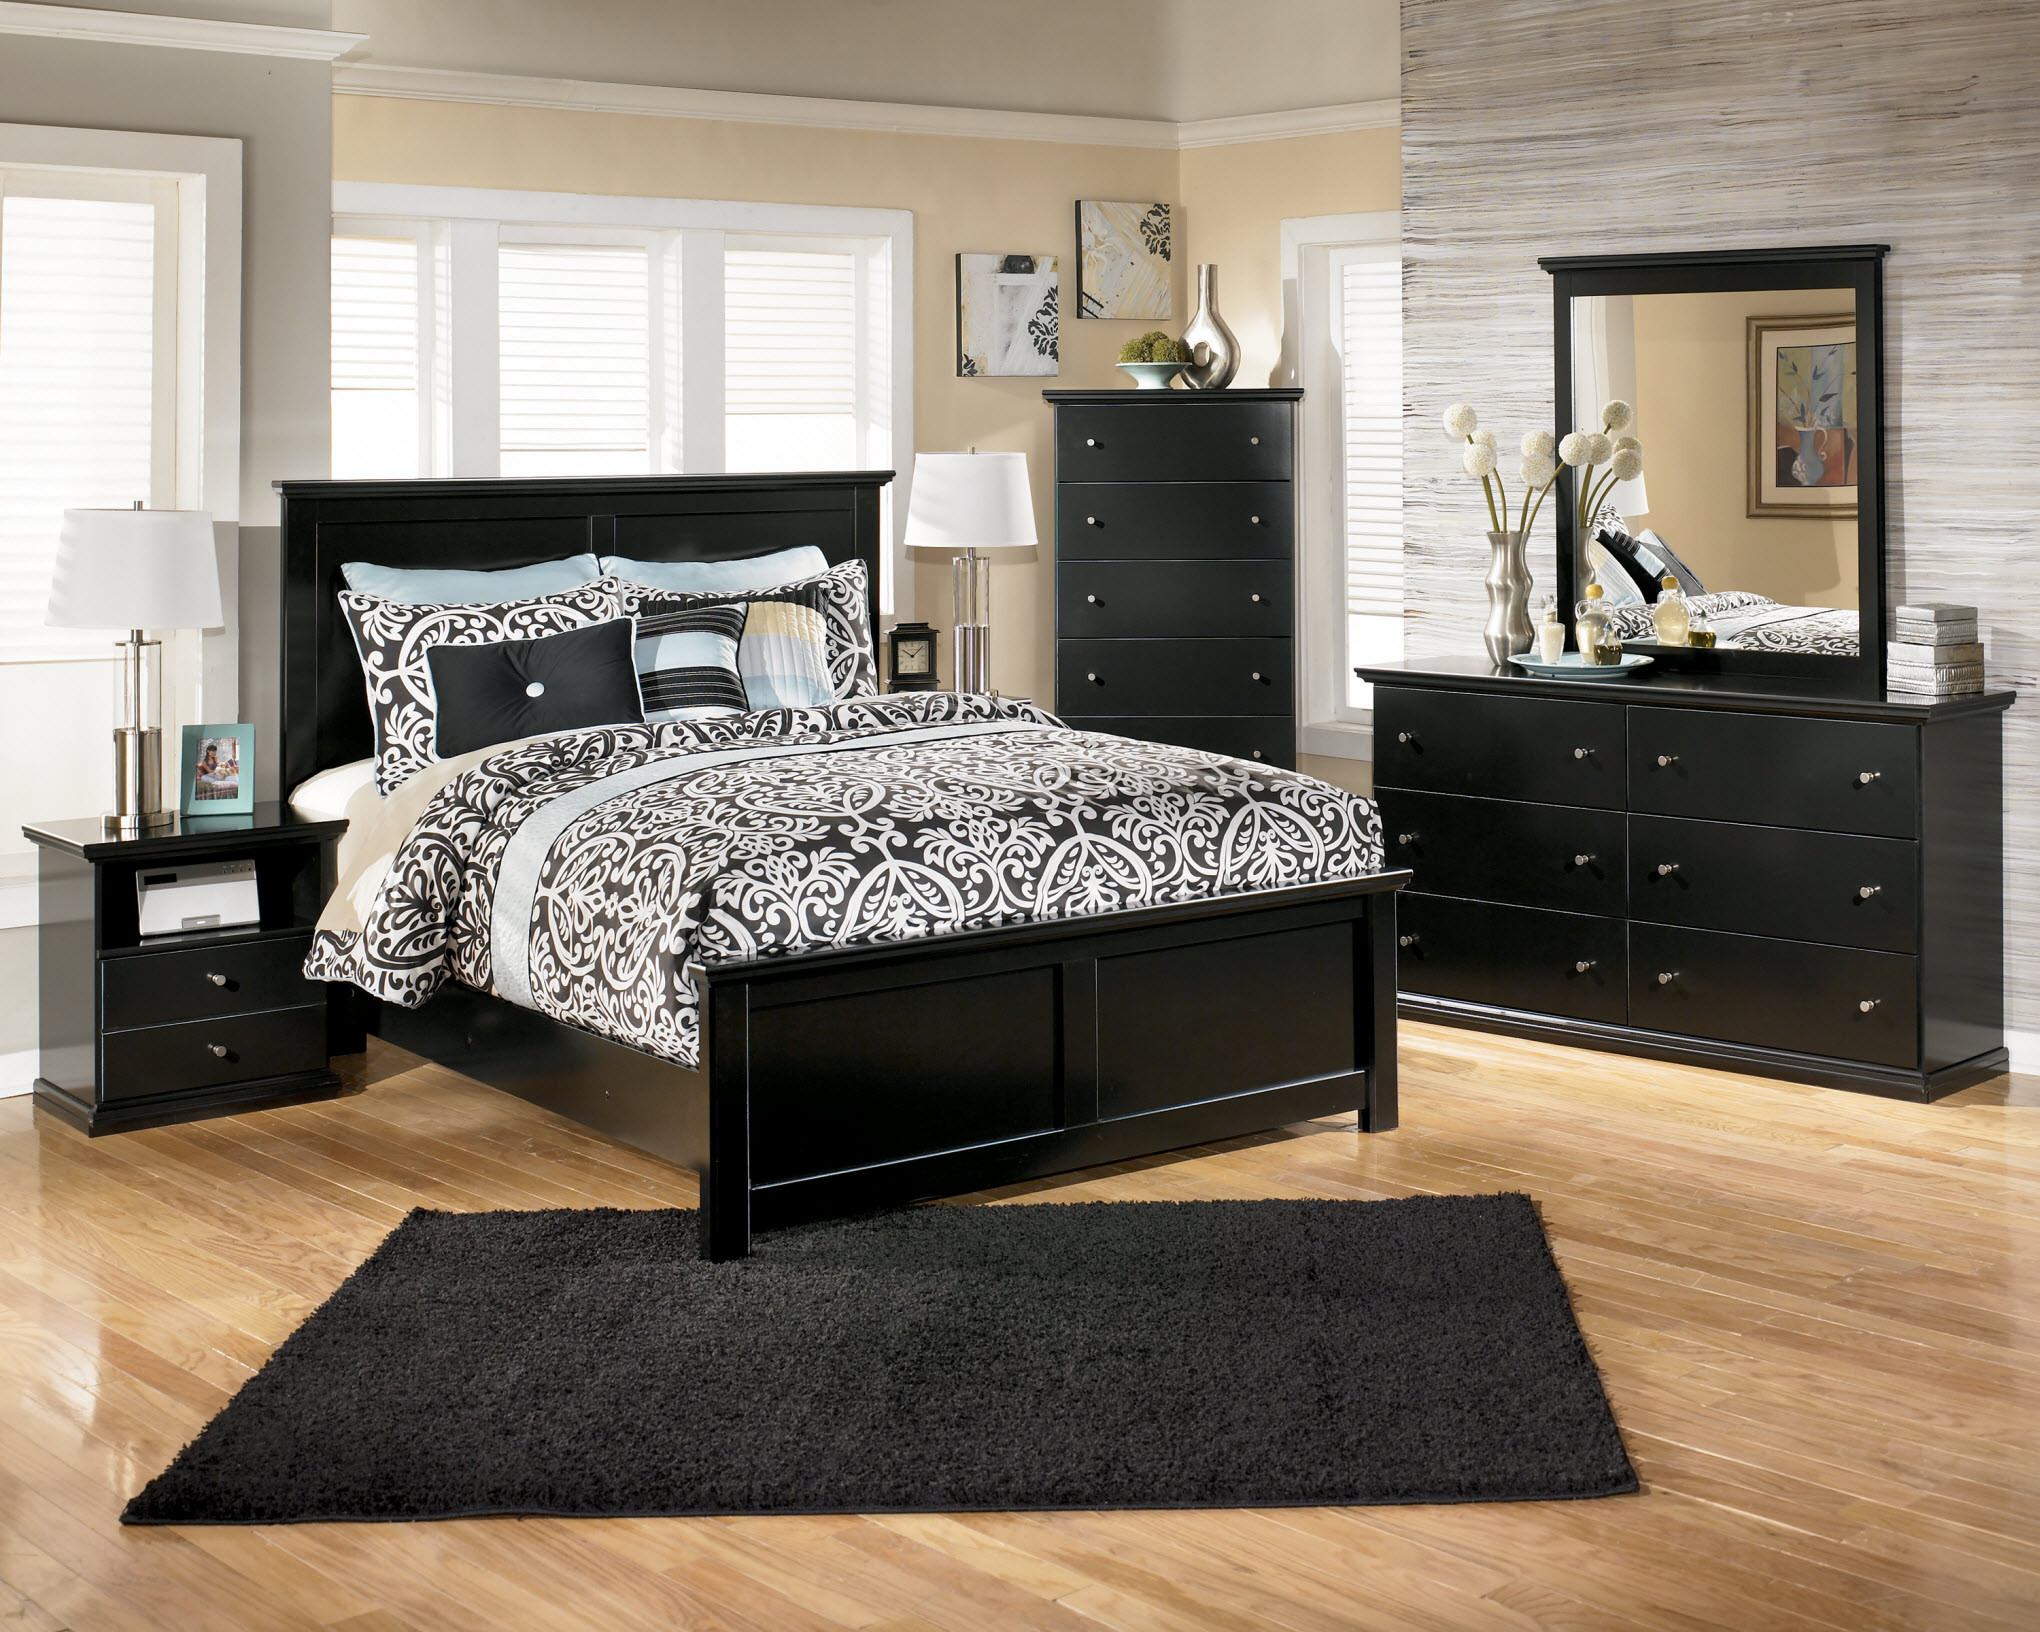 Best ideas about Black Bedroom Set . Save or Pin Making an amazing bed room with black bedroom furniture Now.